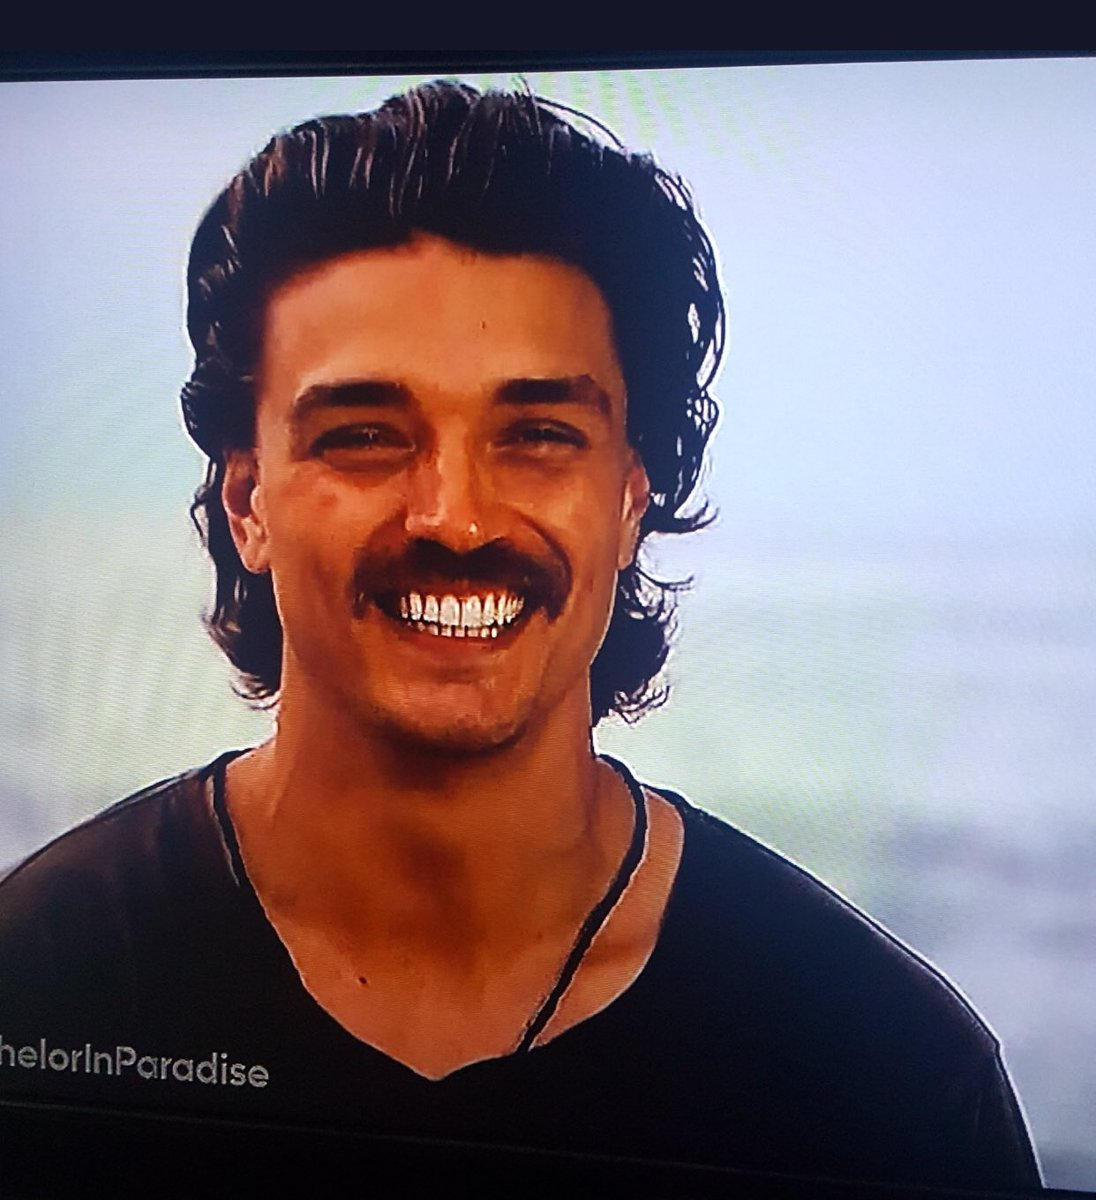 Definitely didn't expect Dean to come back looking like Keith Hernandez. #TheBachelorette https://t.co/yvaiuqF8nh